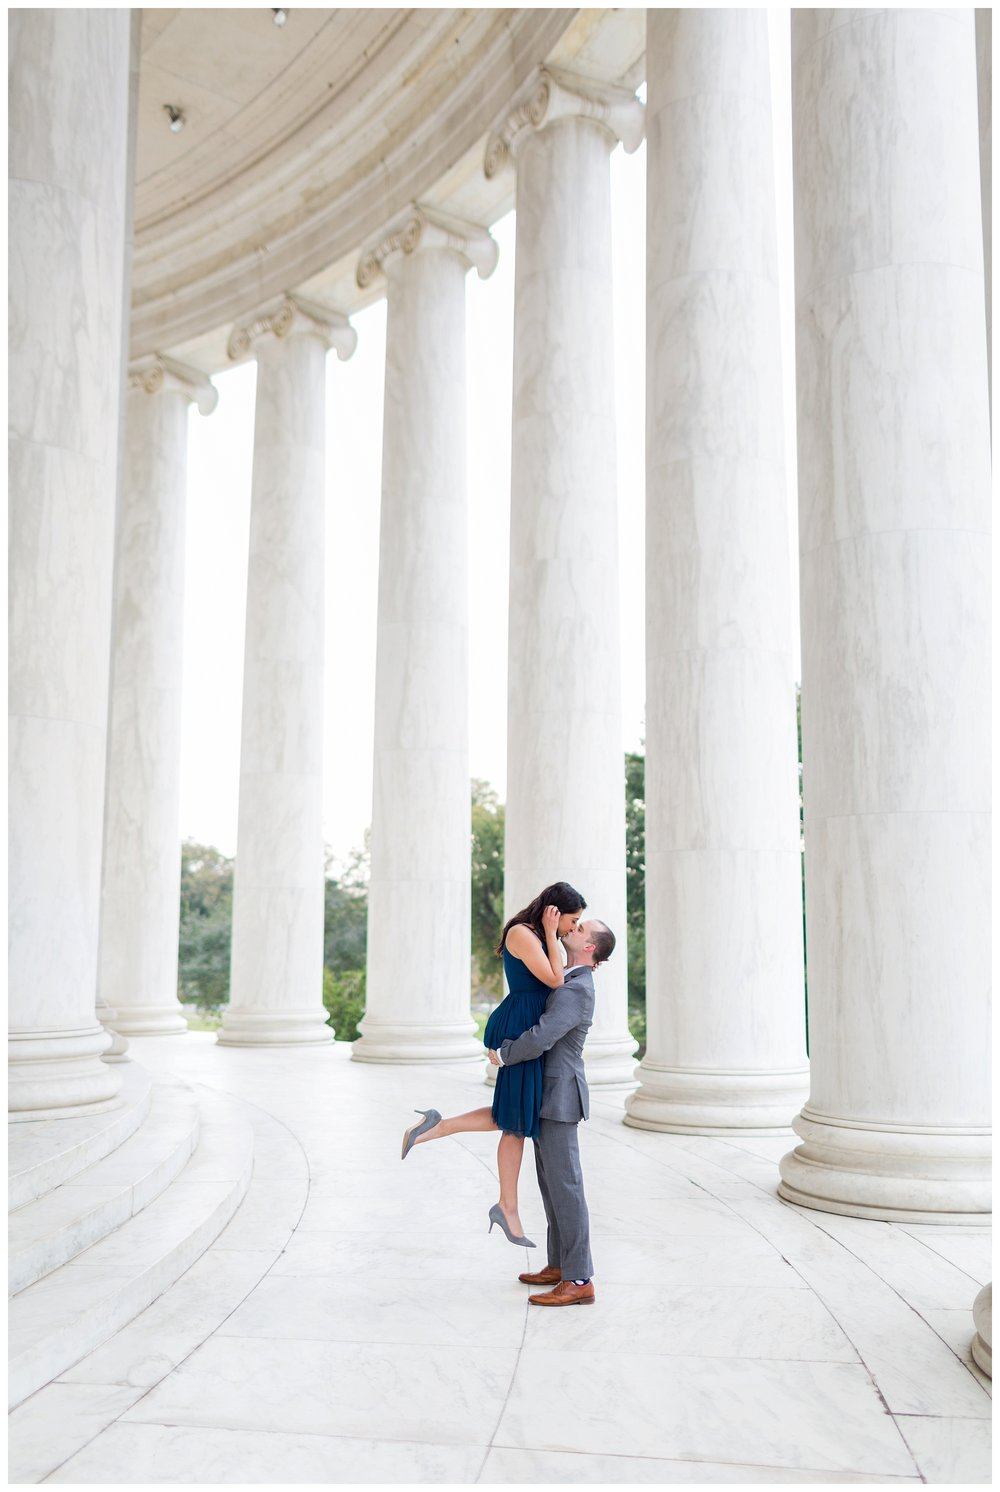 Washington DC Engagement Photos Kir Tuben_0023.jpg